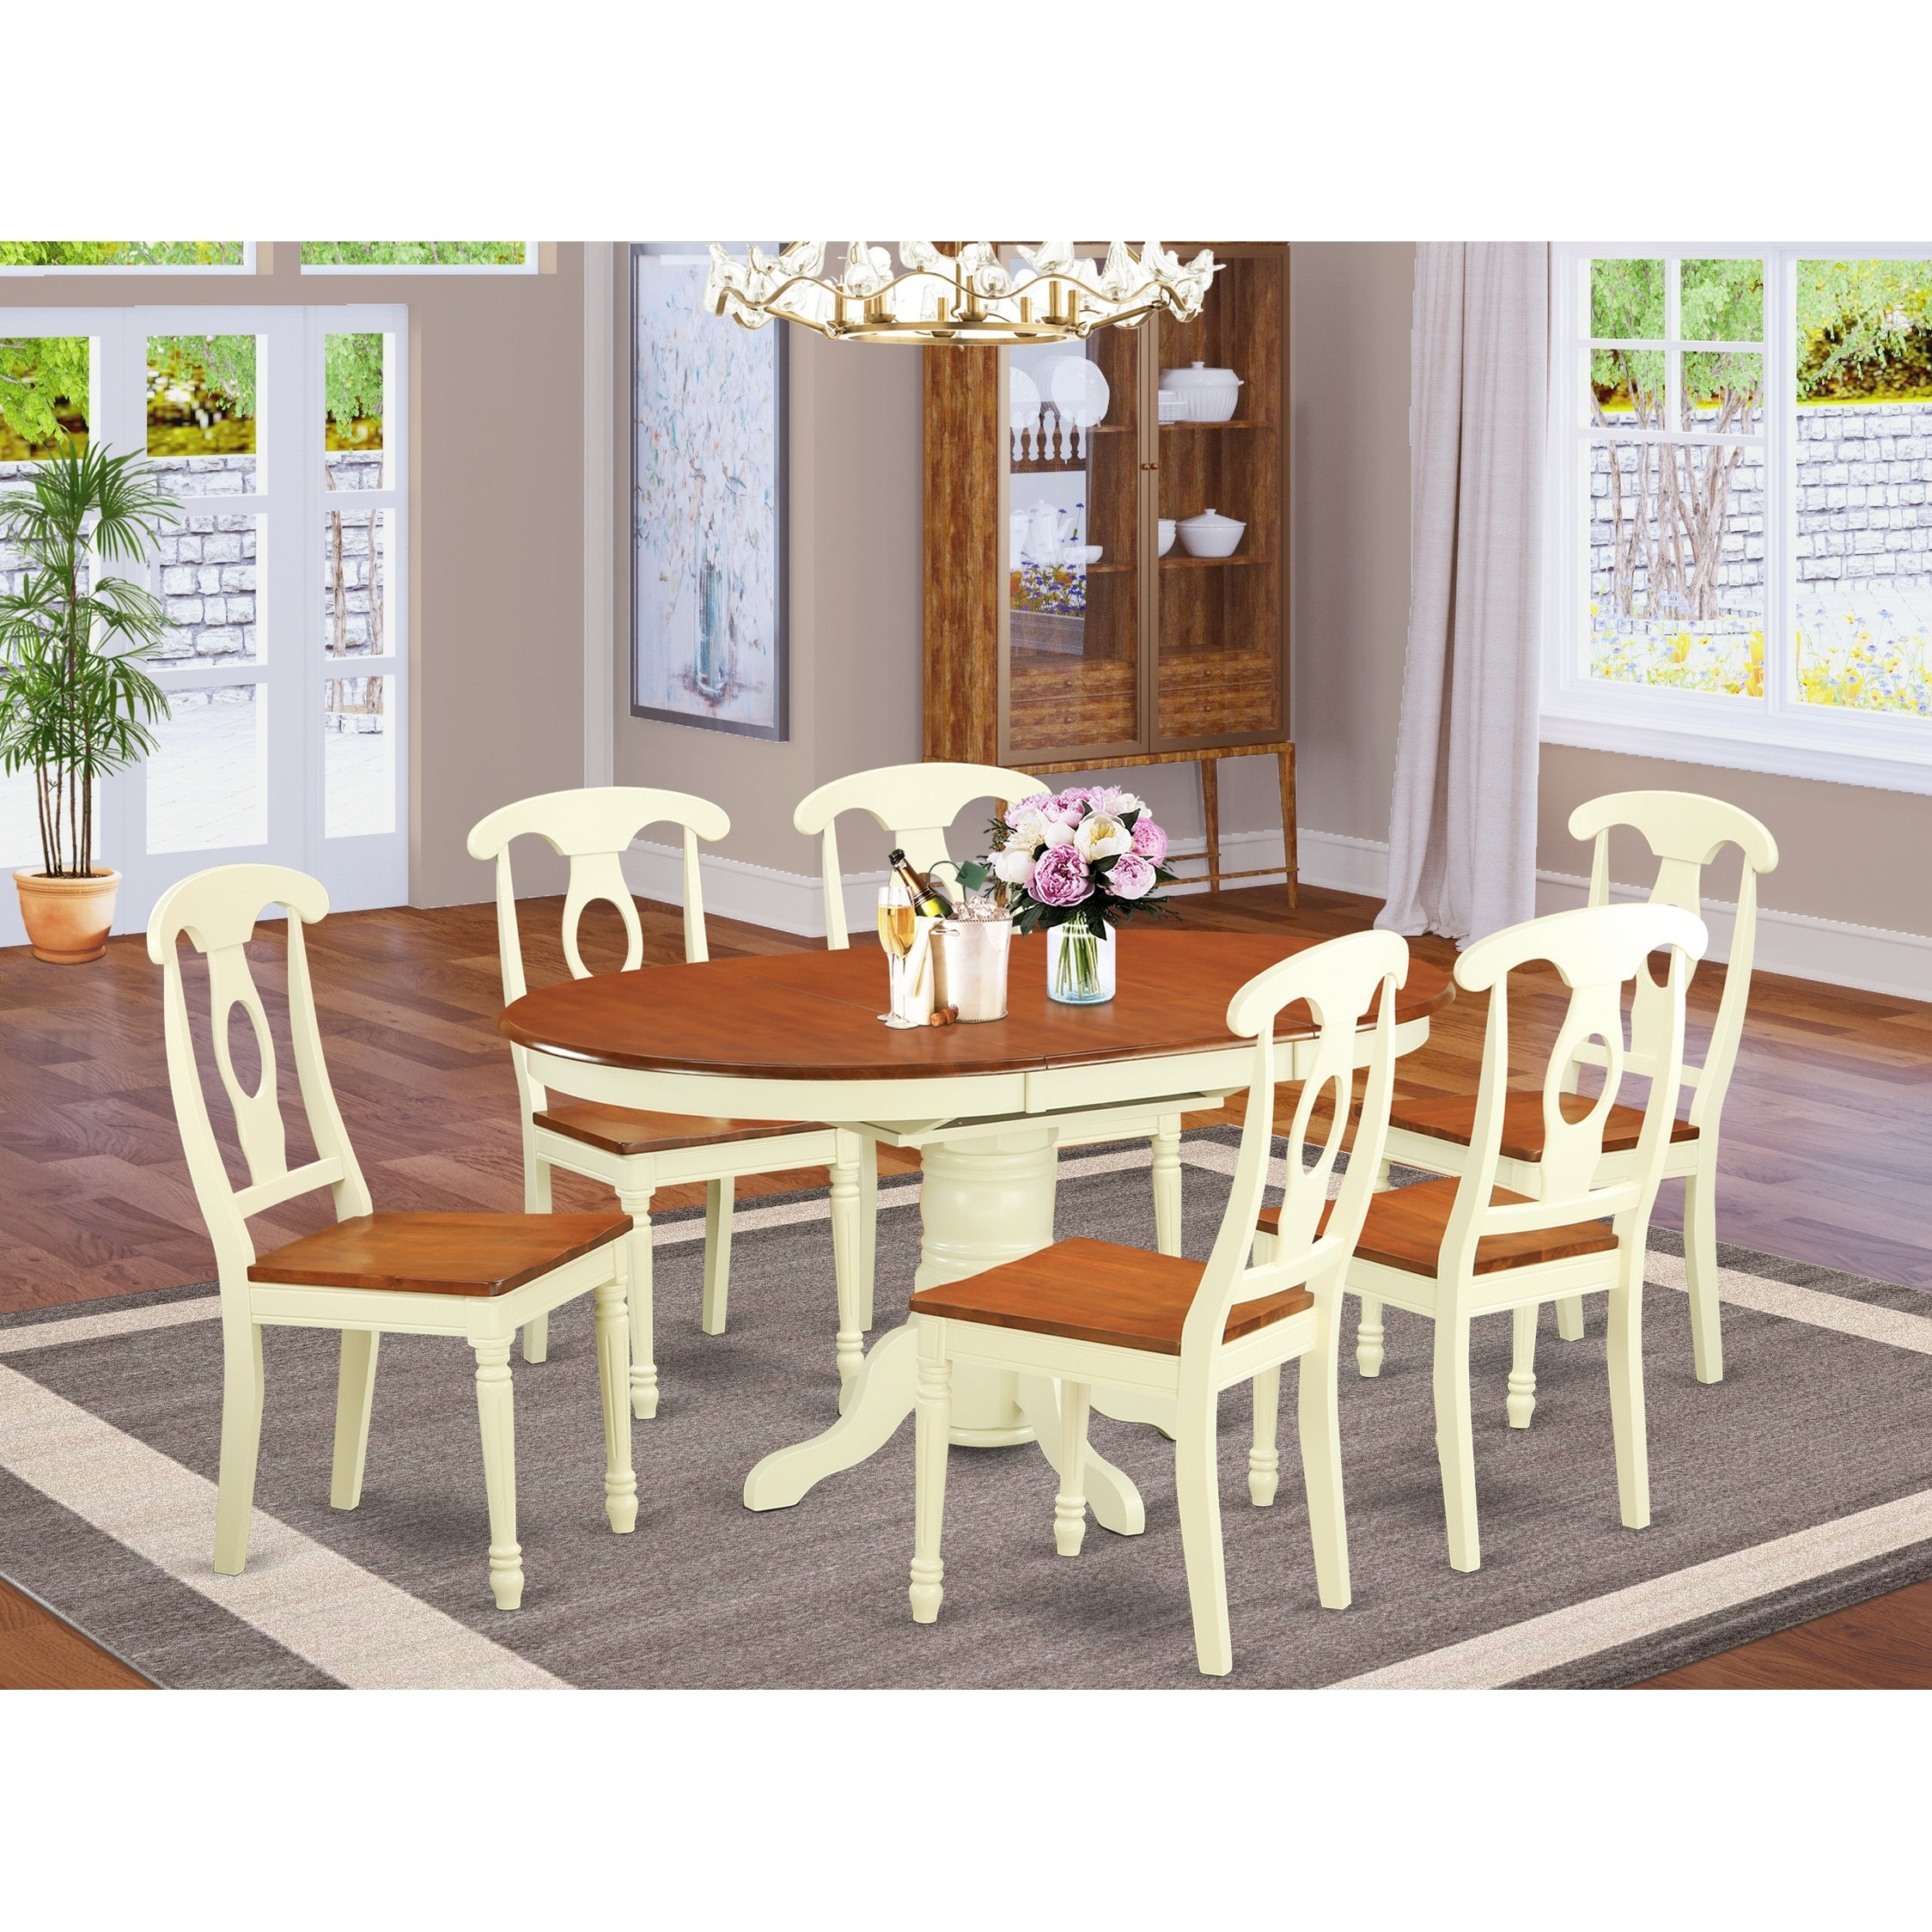 Cucina Letters Kitchen Decor, Shop 7 Piece Oval Dining Table And 6 Dining Chairs Overstock 10296450